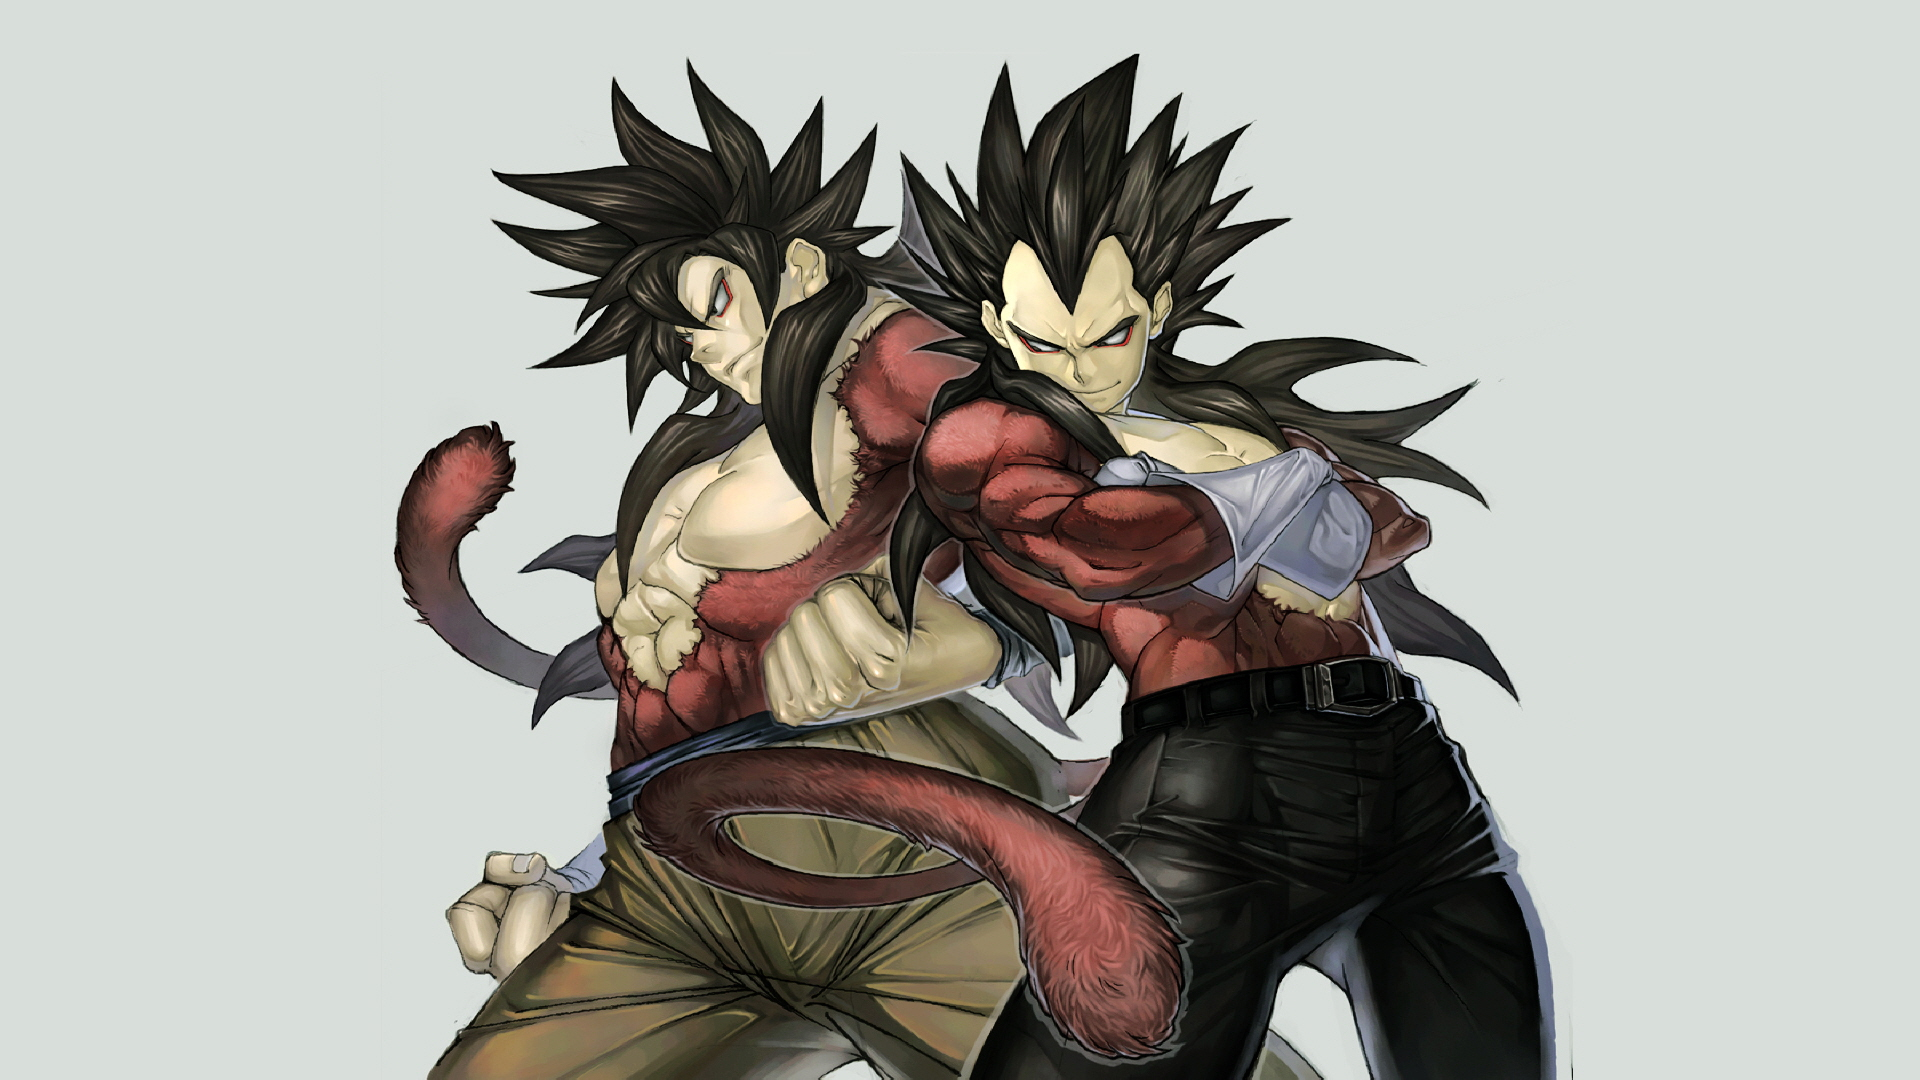 dragon ball z wallpapers twins